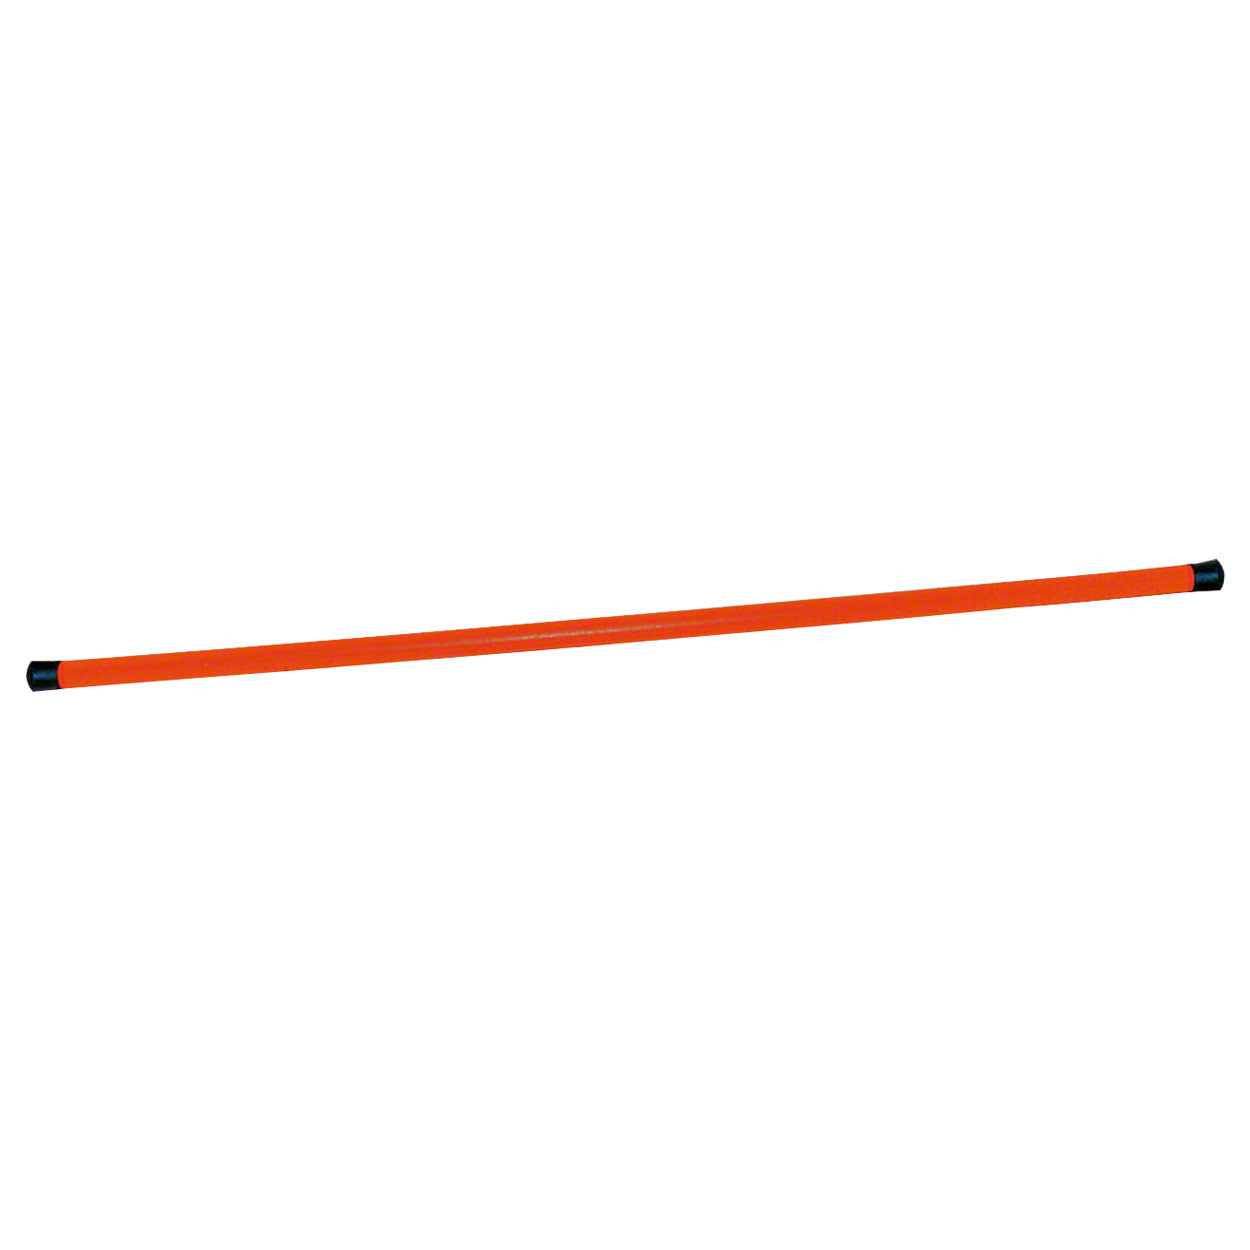 Gymnastik & Fitness: Gewichtsstange Fit Bars, 1 kg, Ø 2,8 cm x 120 cm, orange